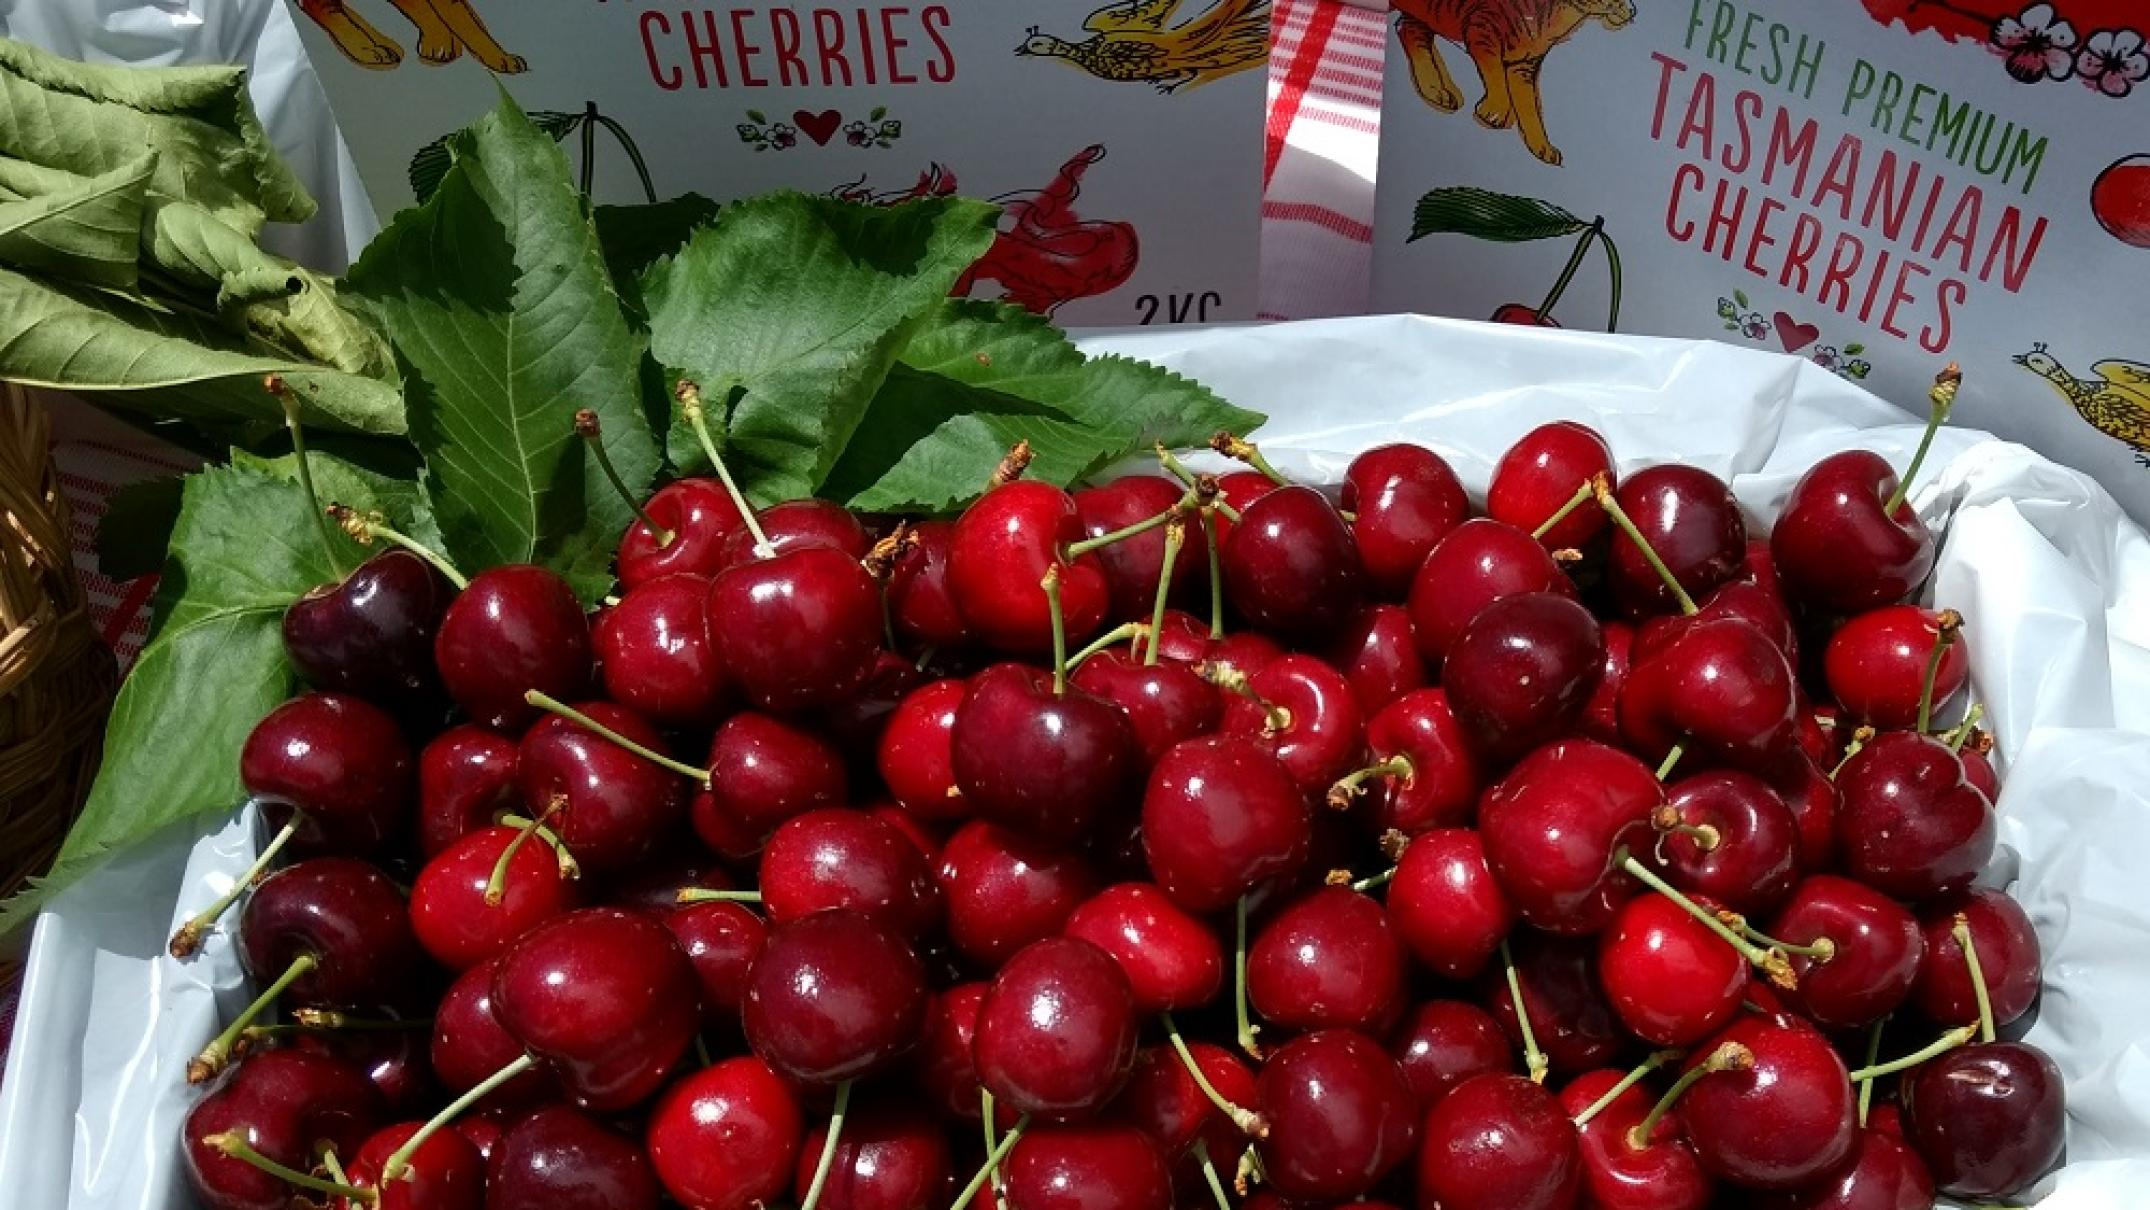 'They're making somewhat a couple of cash': Tassie grower welcomes Hong Kong seizure of falsely branded cherries